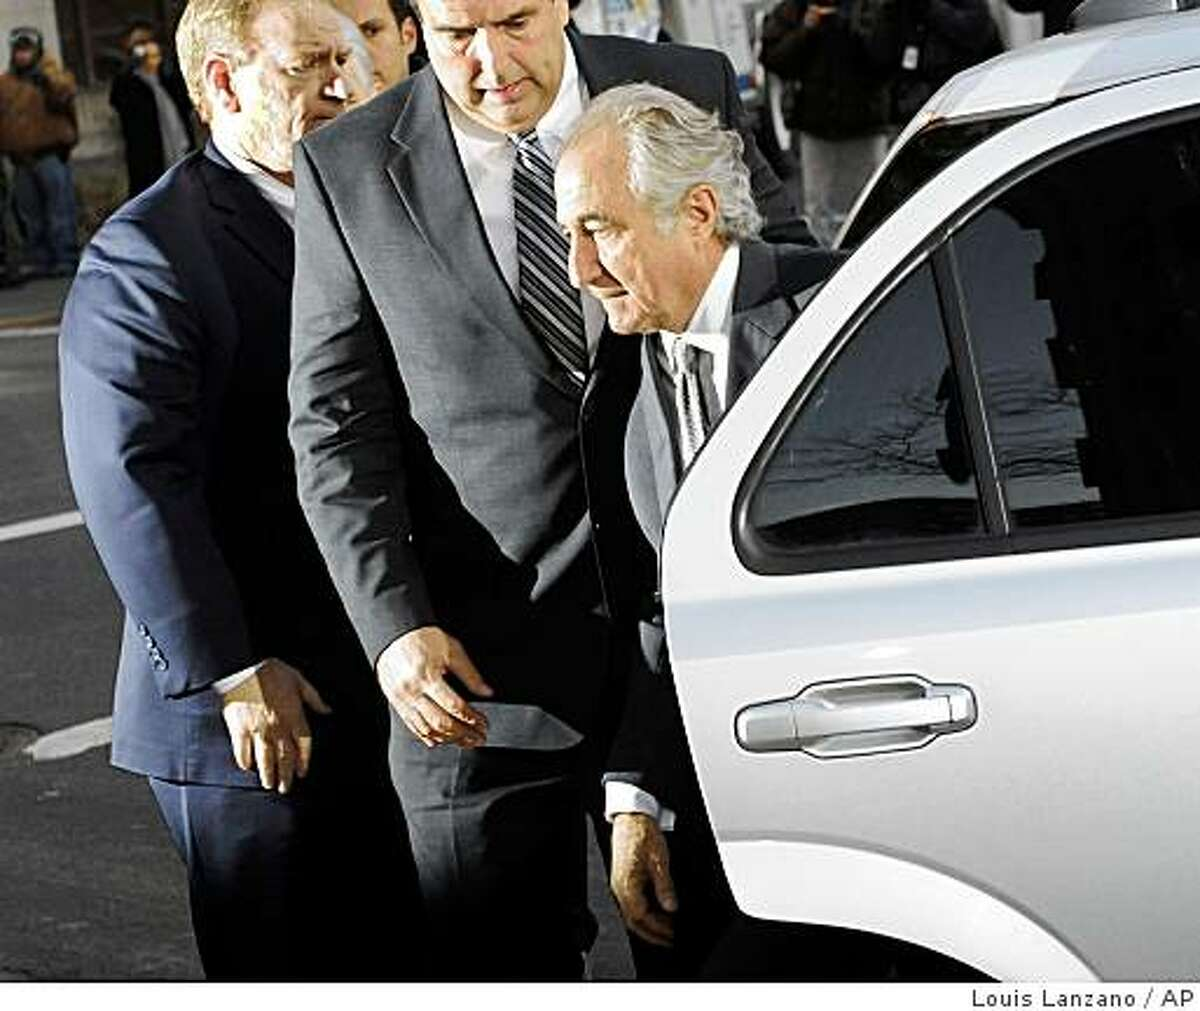 FILE - In this March 12, 2009 file photo, Bernard Madoff arrives at Manhattan federal court in New York. Some victims were expected to call for harsh punishment at the disgraced financier's sentencing Monday, June 29, 2009 in federal court in Manhattan. Ten have told U.S. District Judge Denny Chin they wish to speak out in court. (AP Photo/ Louis Lanzano, file)